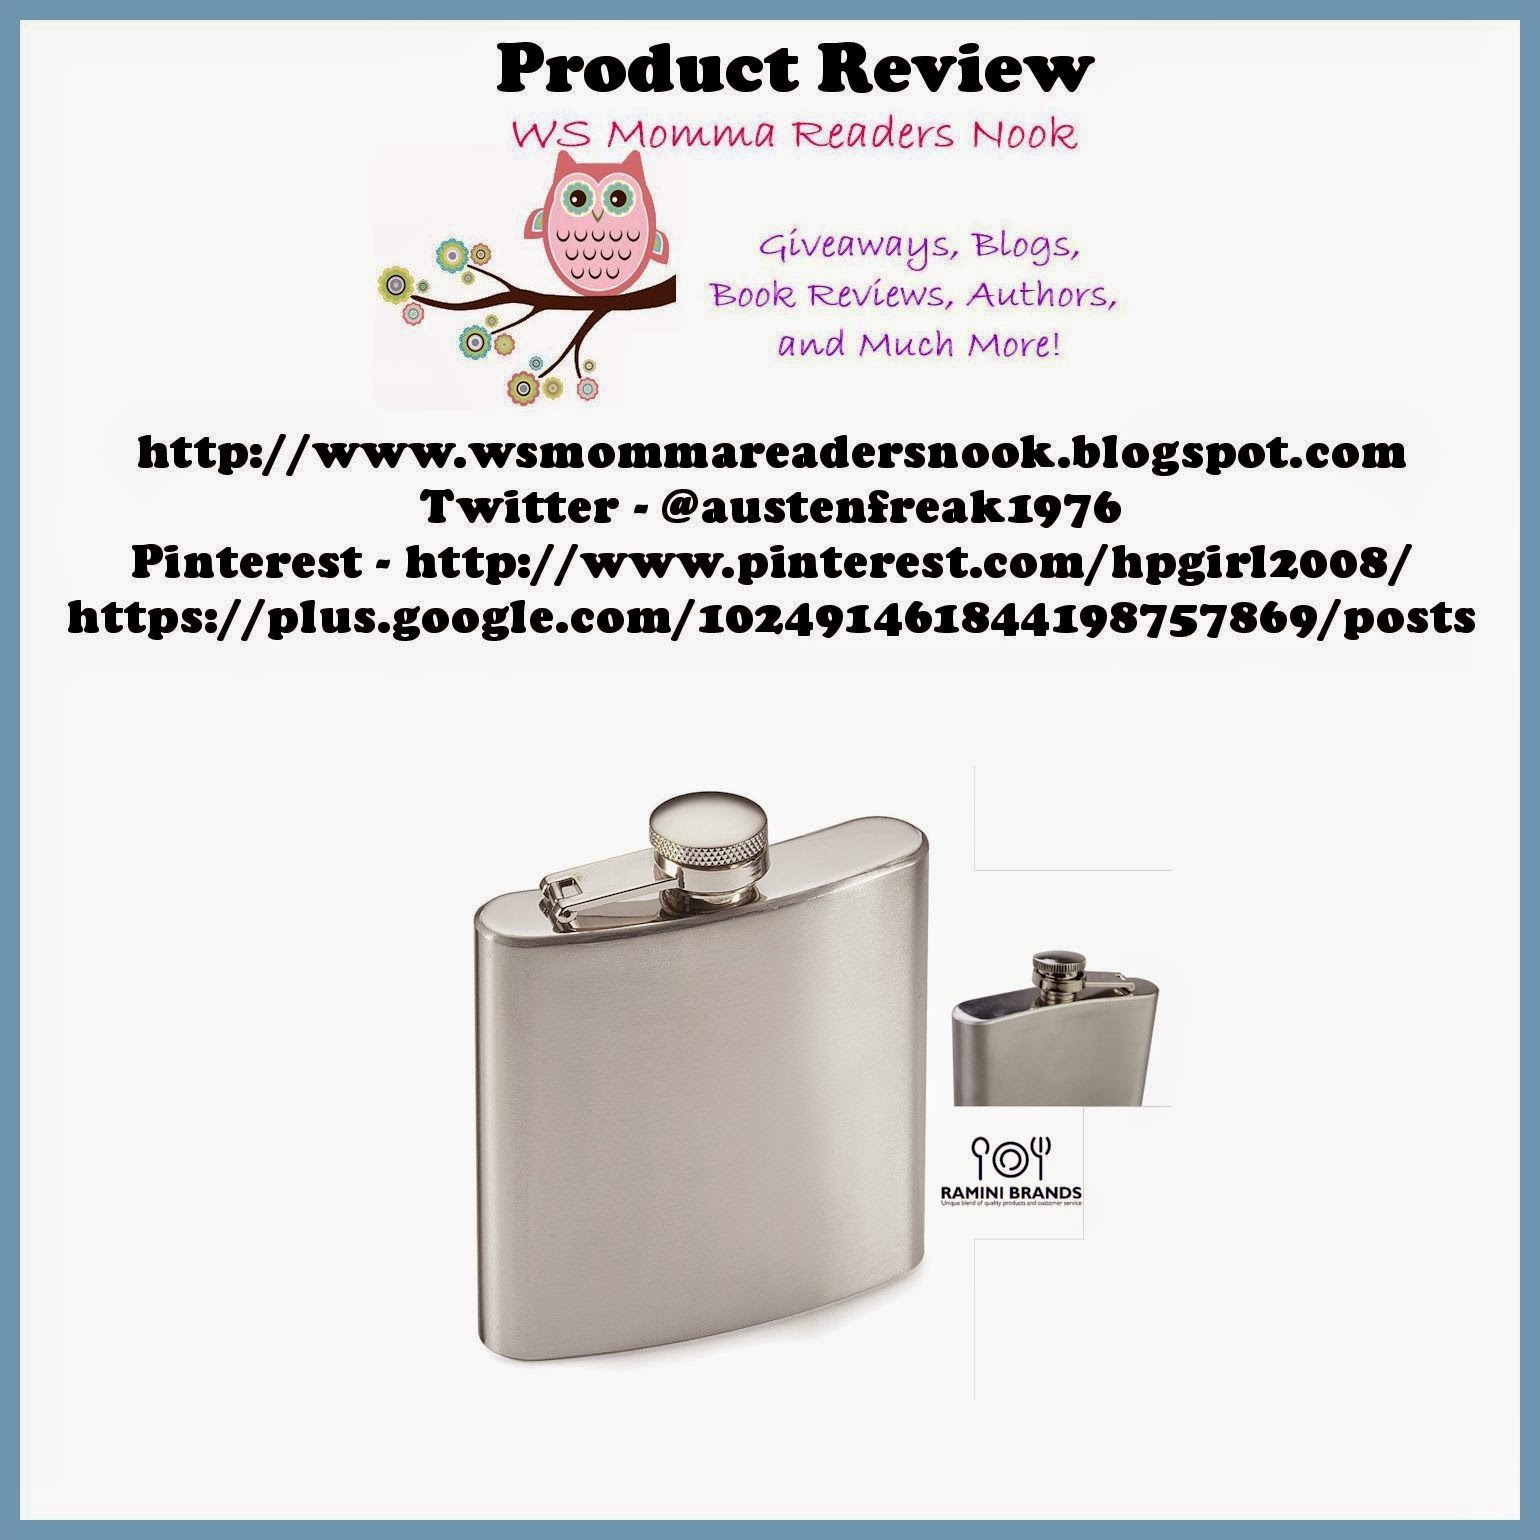 http://www.amazon.com/ramini-brands%C2%AE-stainless-steel-flask/dp/b00qstz30y/ref=sr_1_5?ie=utf8&qid=1419038423&sr=8-5&keywords=hip+flask+alcohol_spirits+travel+container